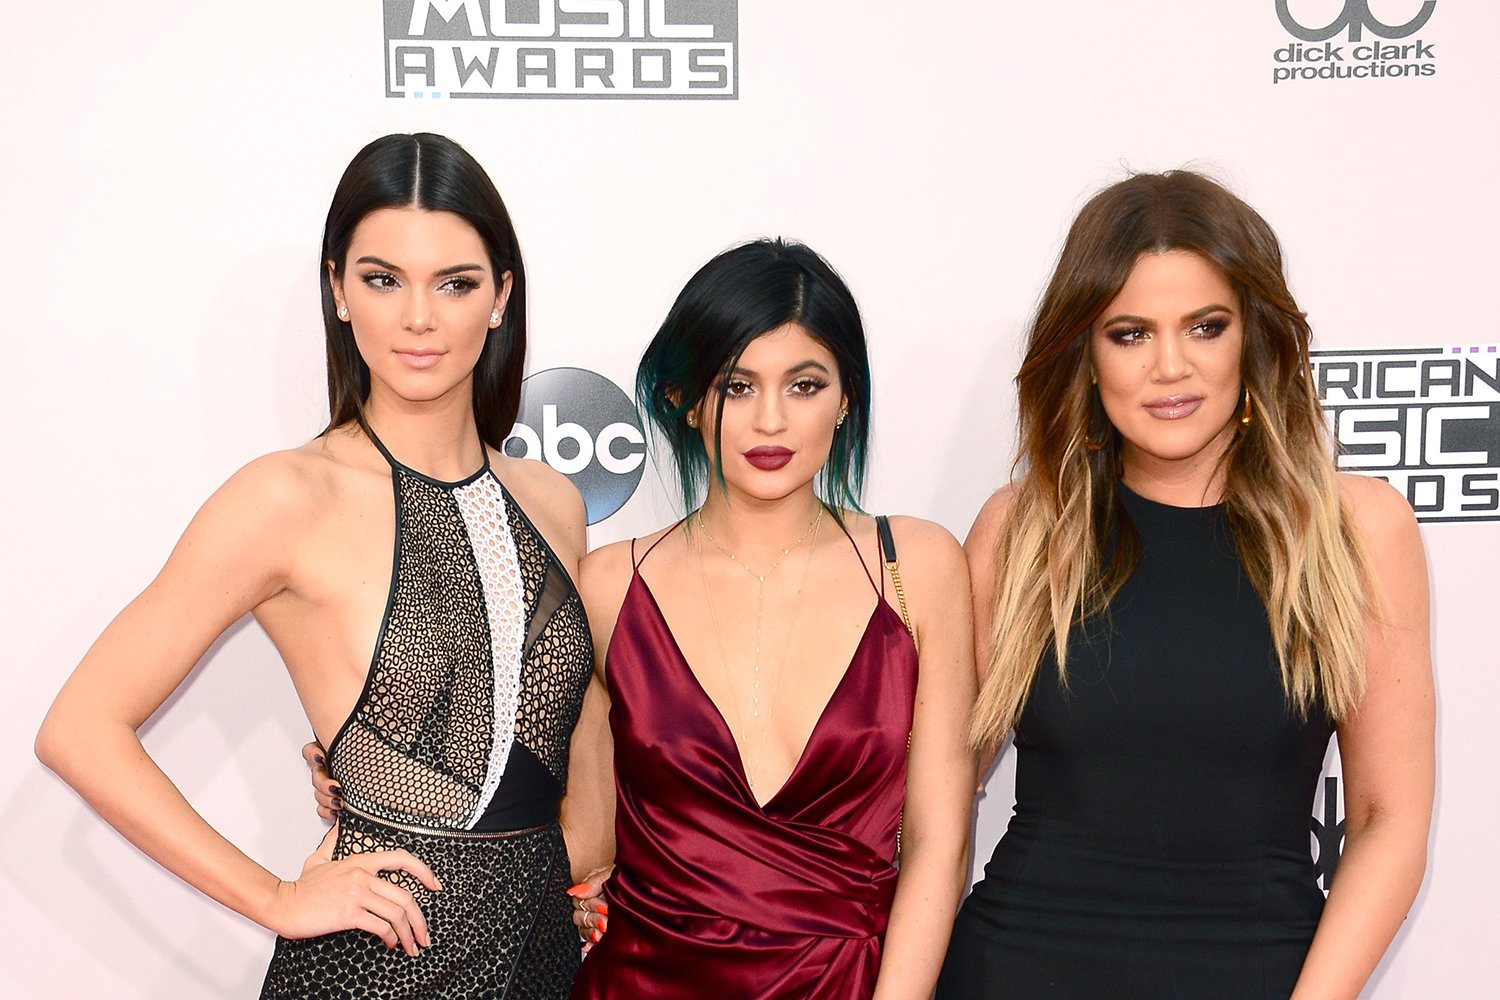 The ultimate Kardashian rich list: how much do they all earn? ££££ https://t.co/iWEVrYESrR https://t.co/HTIIQD2QGp